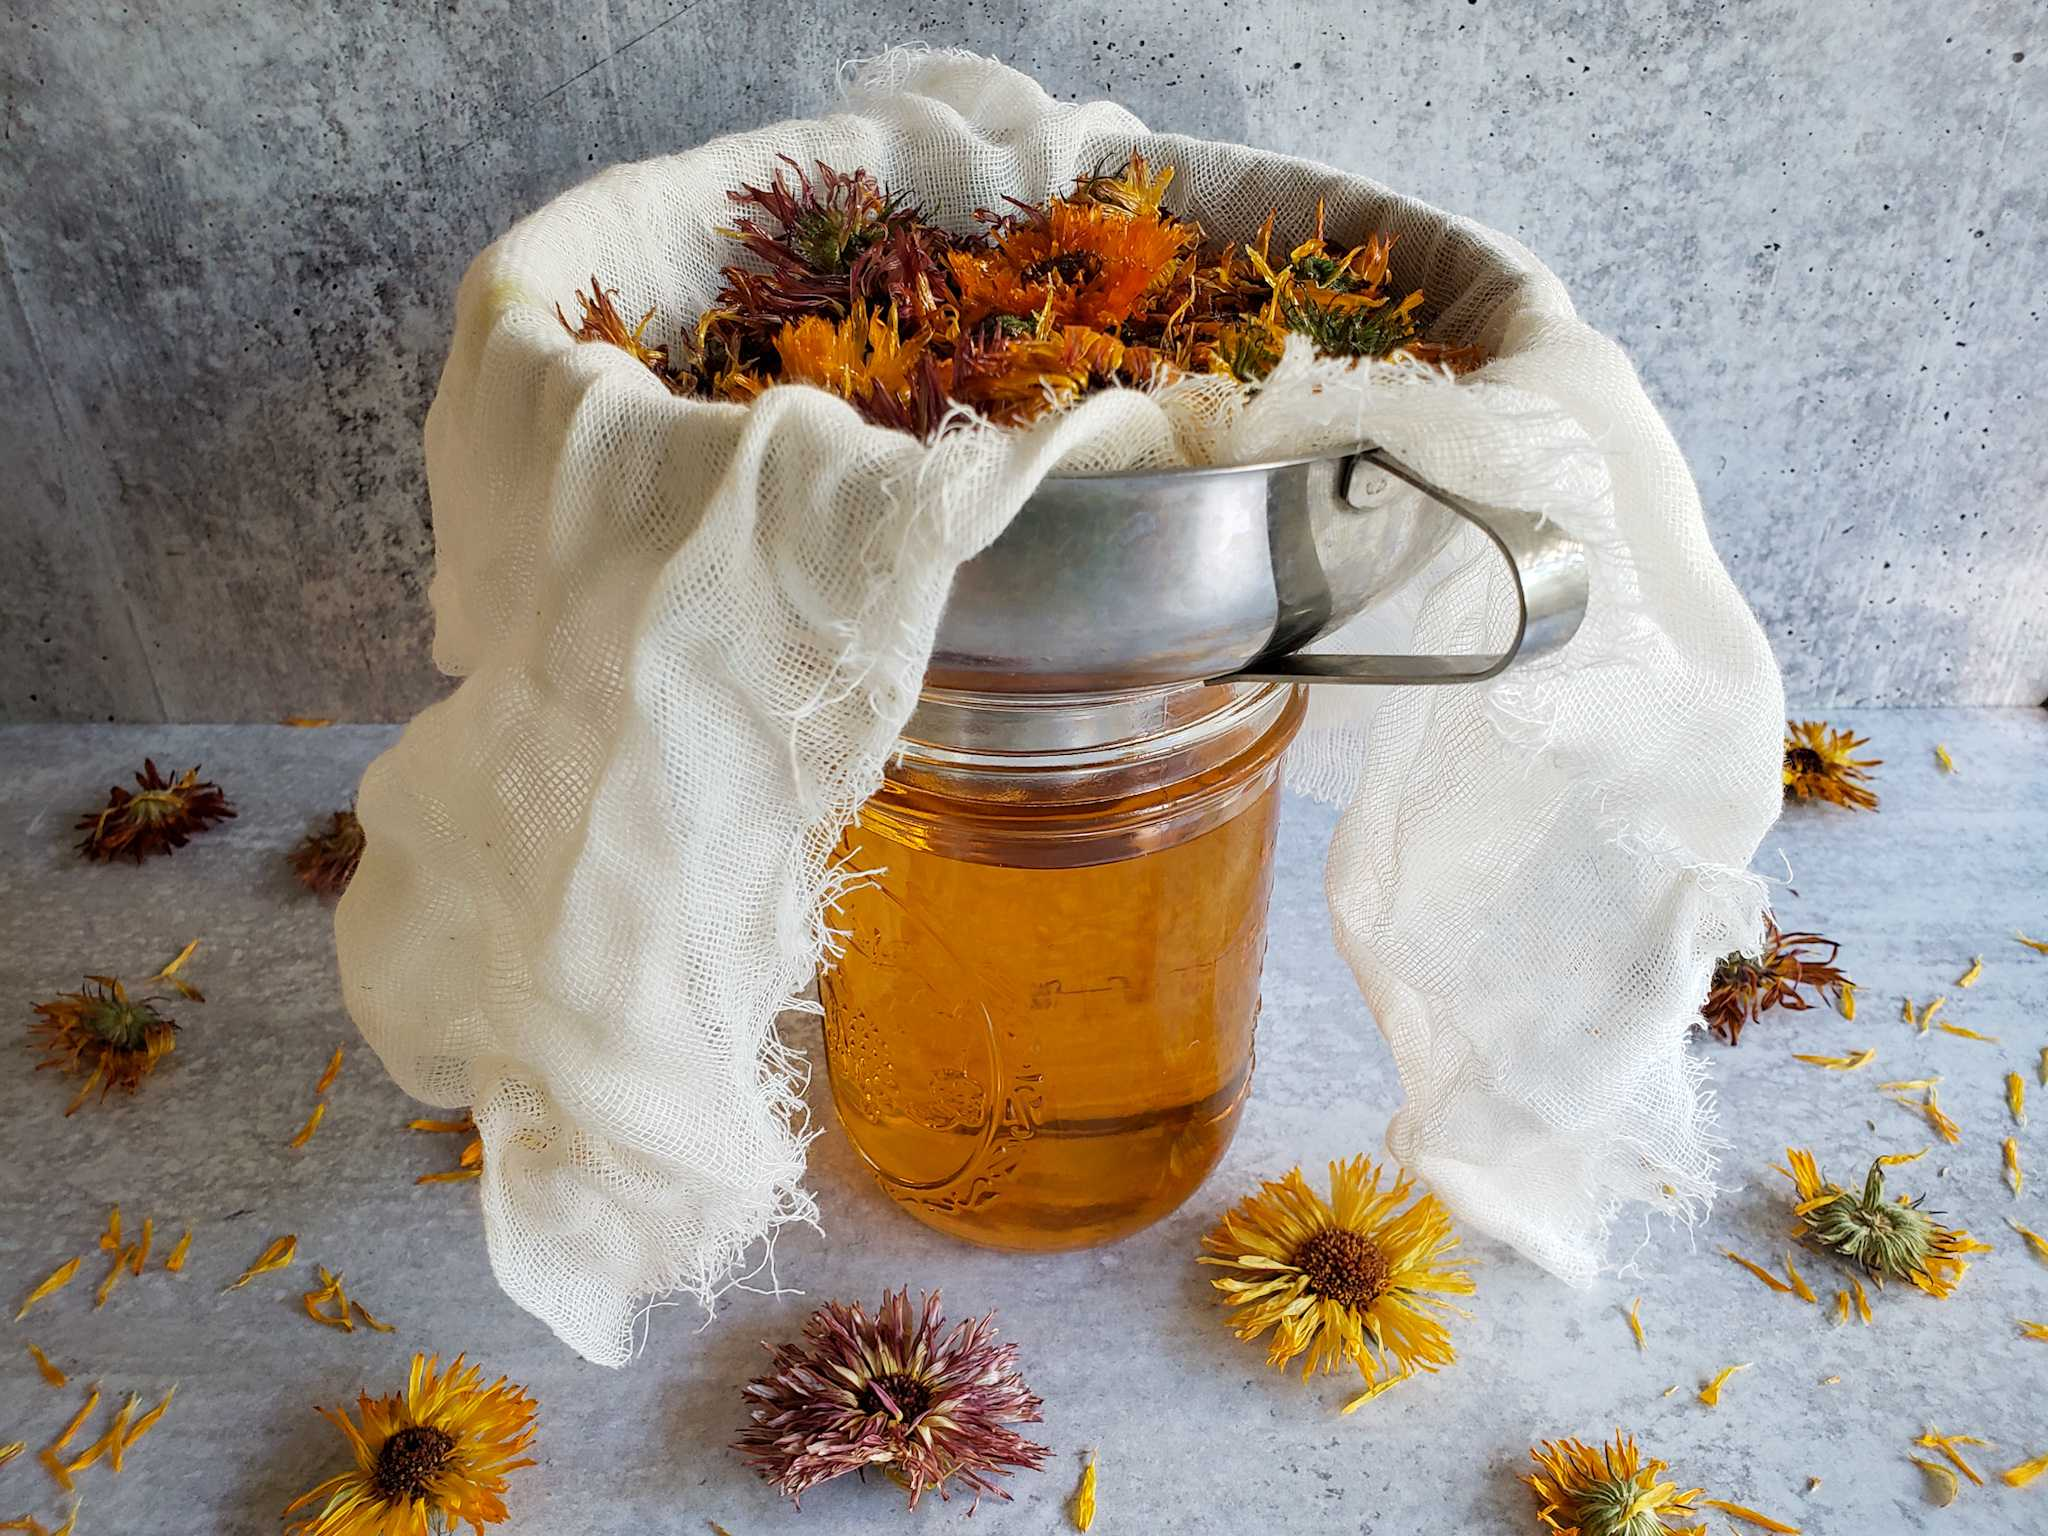 A pint mason jar is shown full of calendula infused oil. A stainless steel funnel sits atop the jar, there is cheesecloth lining the inside of the funnel and calendula flowers have been strained out from the oil that is now in the jar. Dried calendula flowers litter the area around the jar.